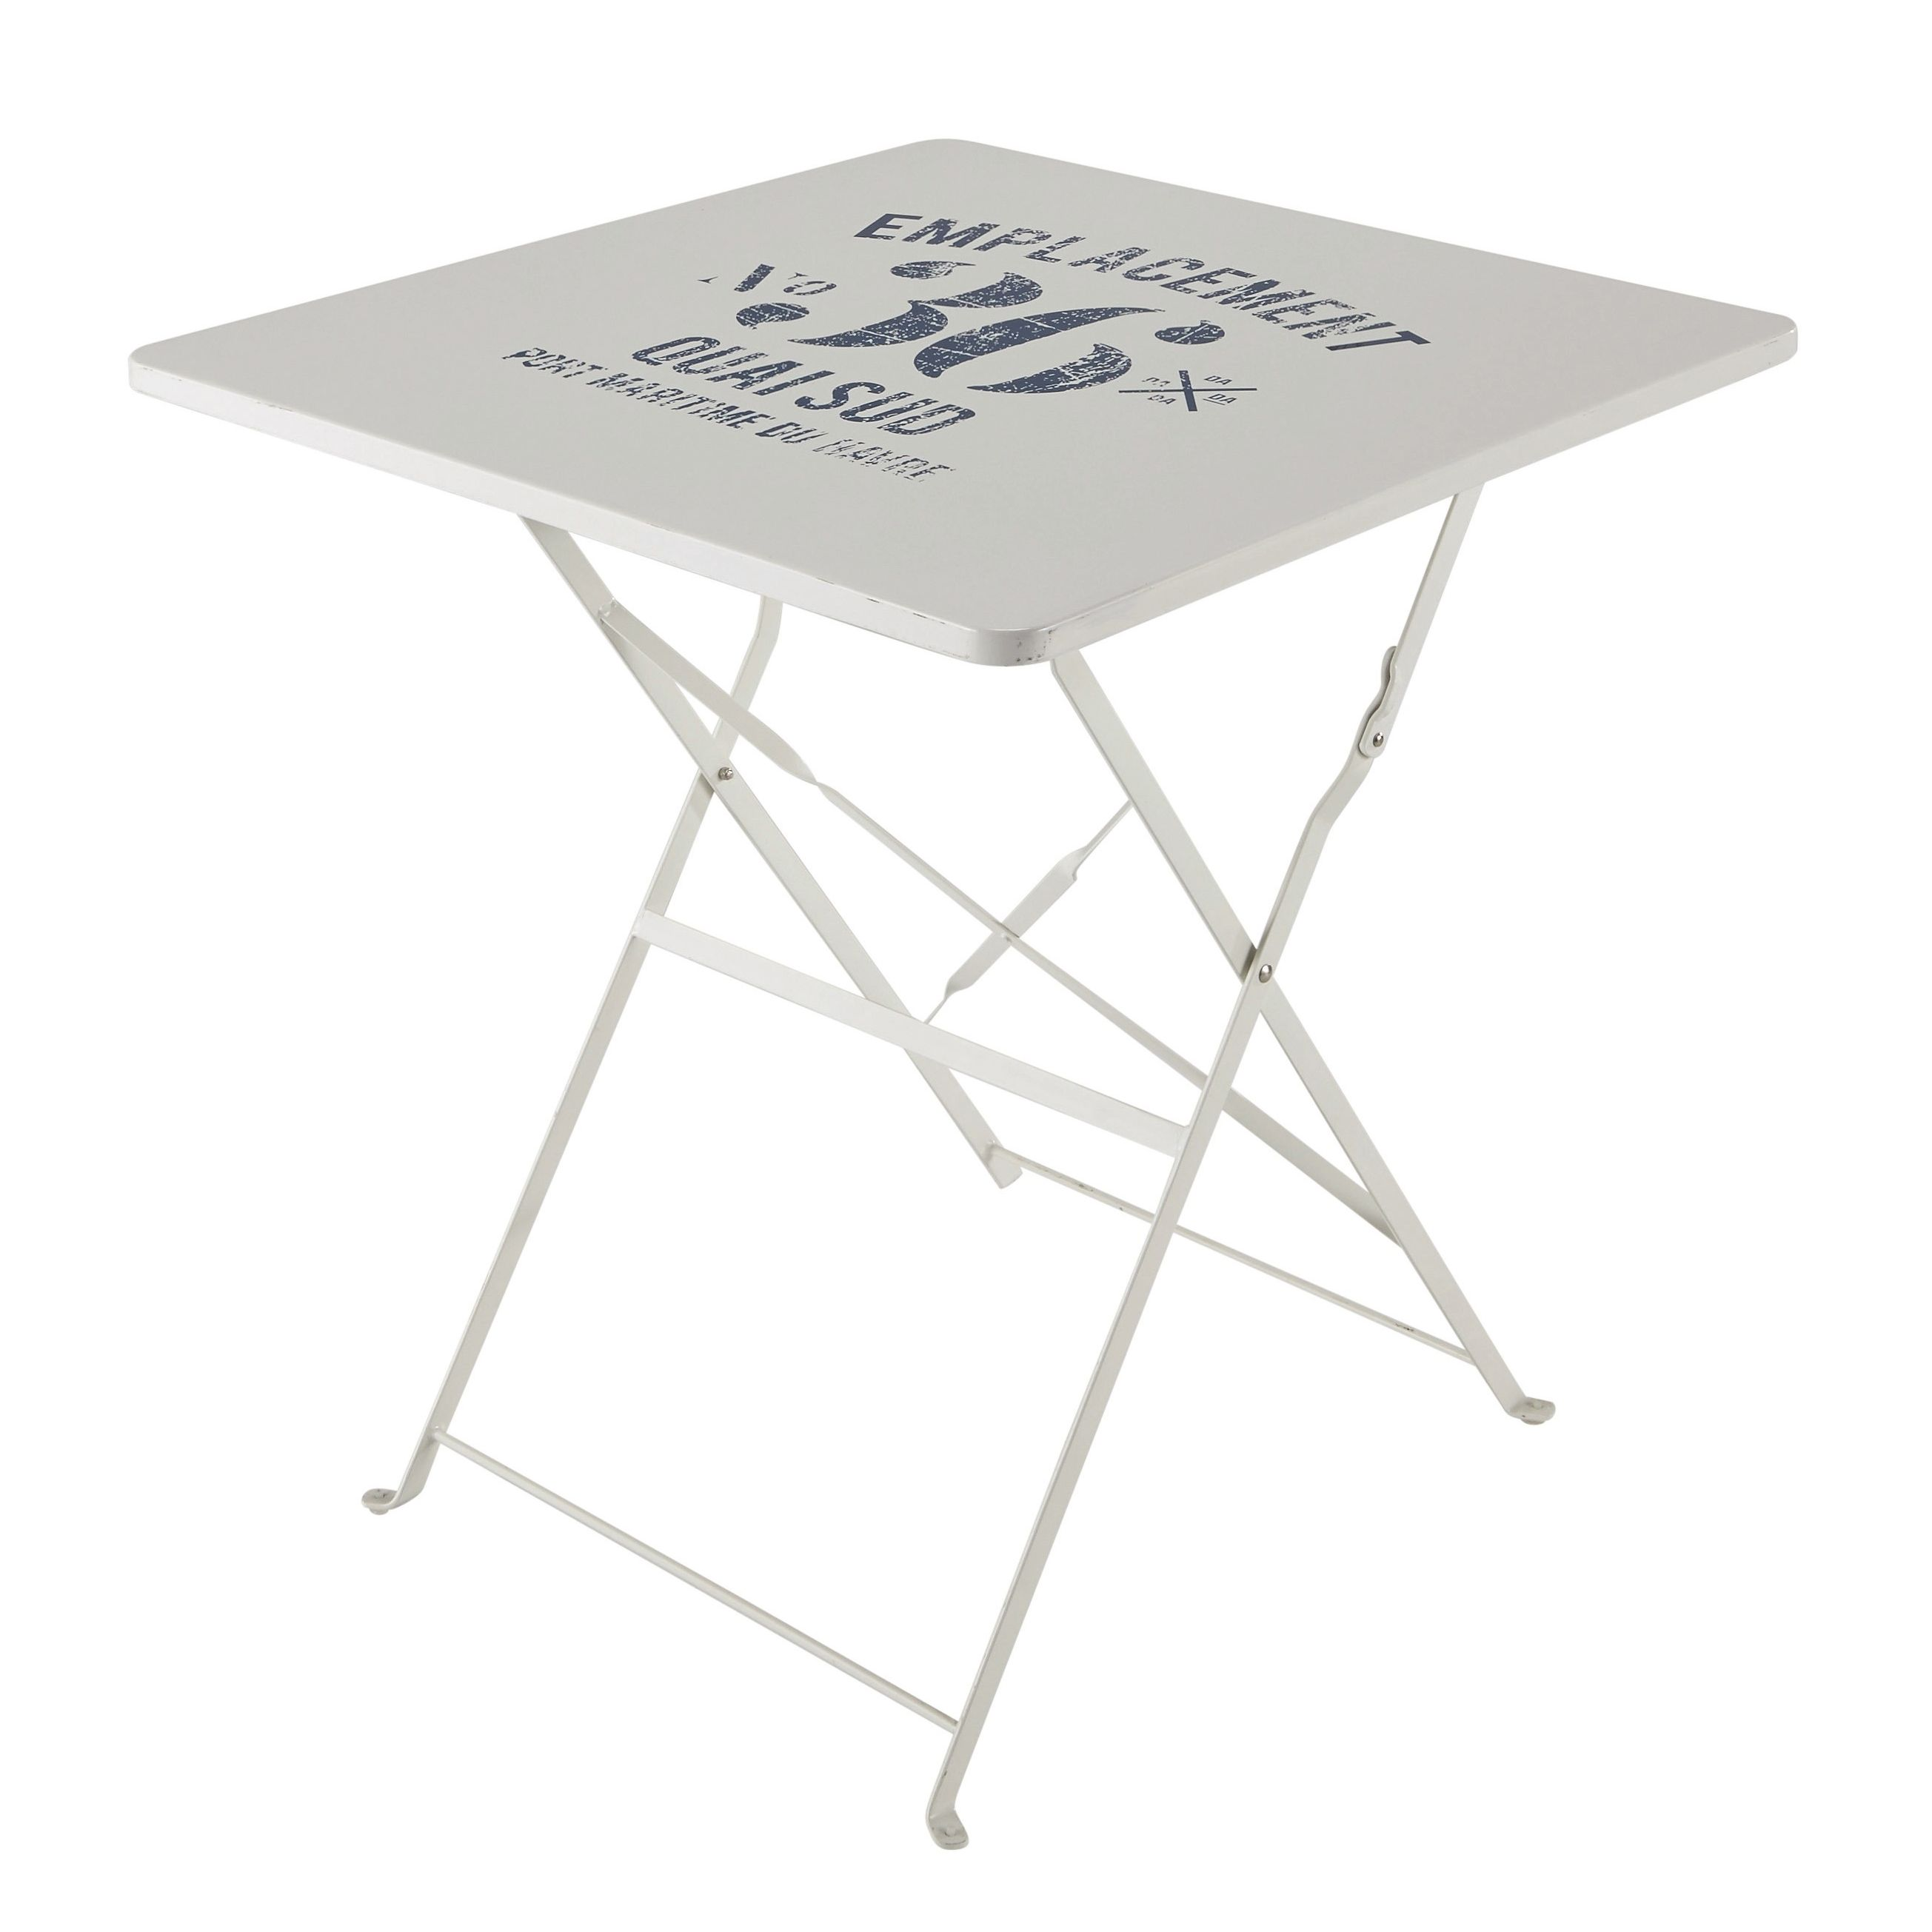 Table Brasserie Castorama Finest Table Pliante De Jardin En Mtal Blanche L Cm